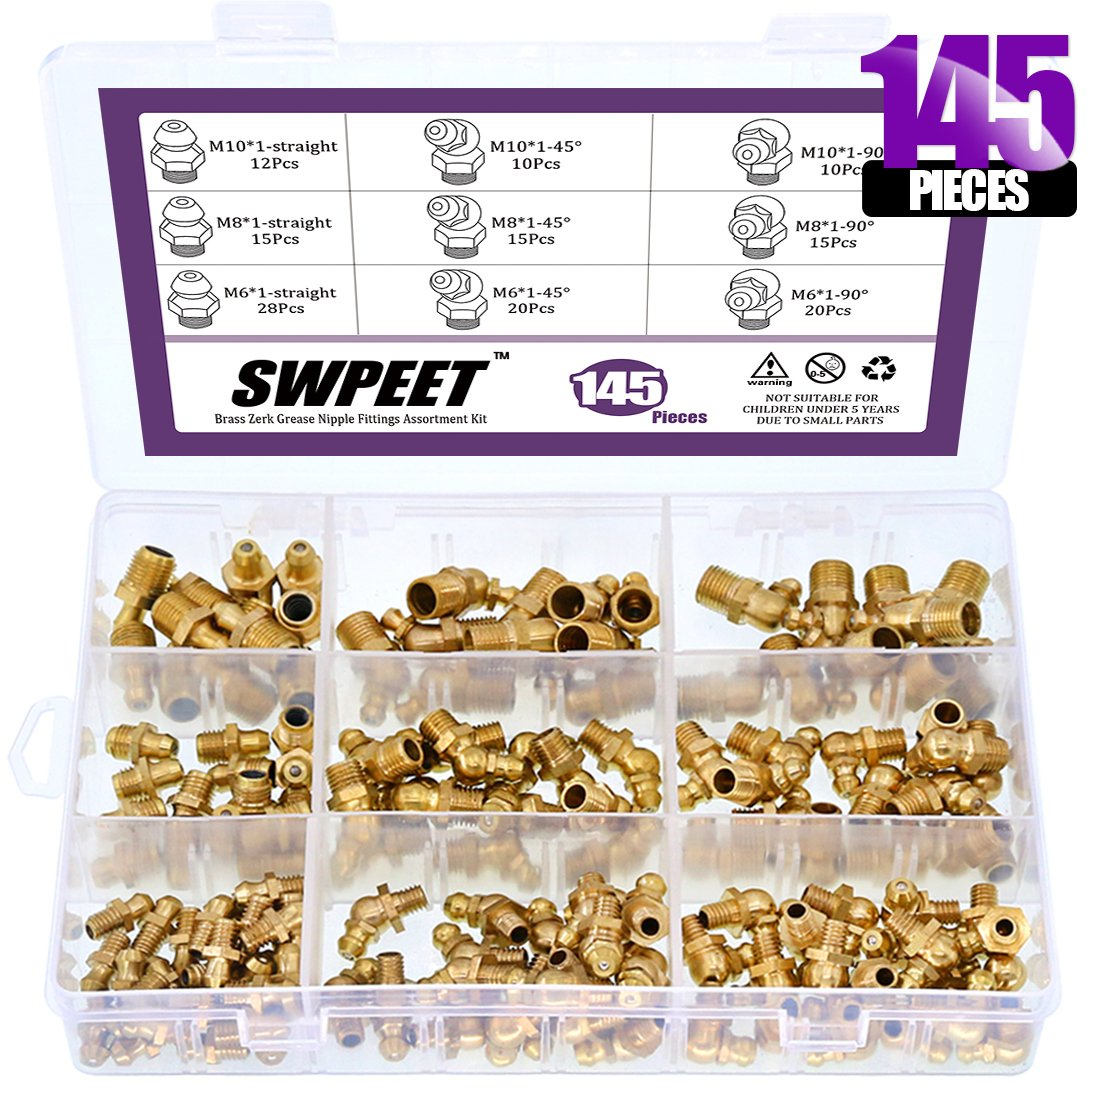 Swpeet 145Pcs Grease Fittings Assortment Kit, Brass Zerk Grease Nipple Fittings Perfect for Excavators